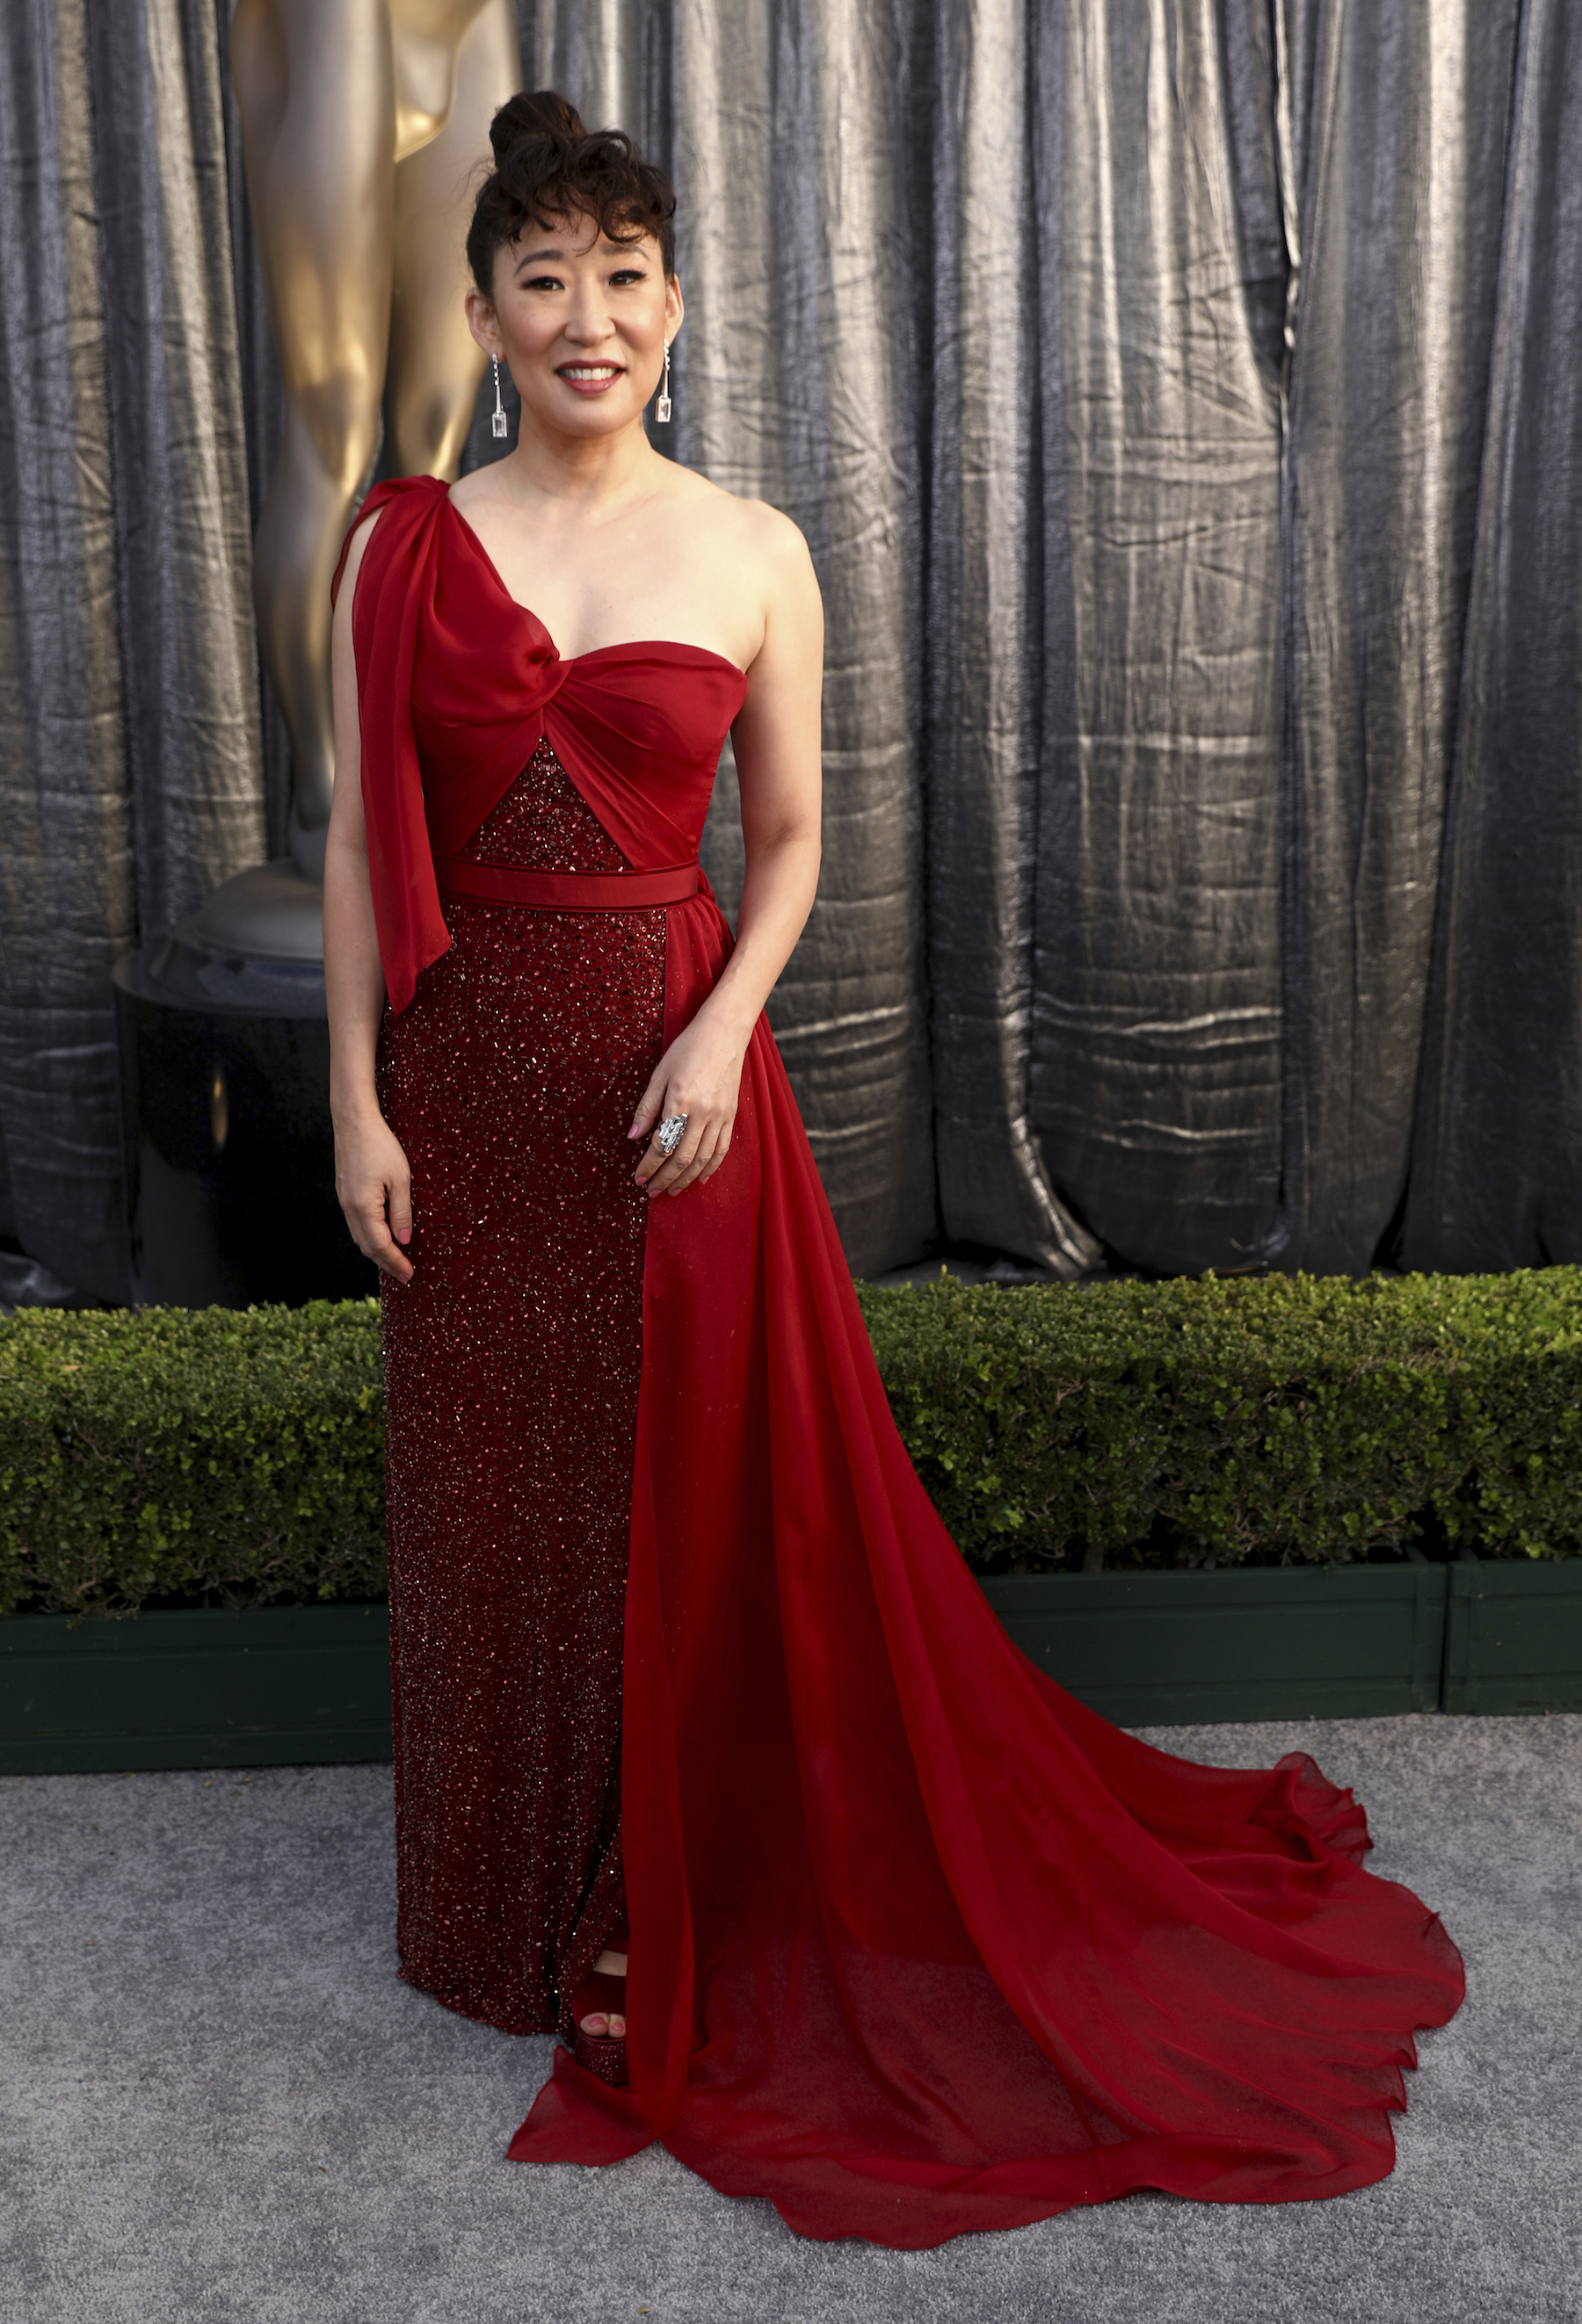 <div class='meta'><div class='origin-logo' data-origin='AP'></div><span class='caption-text' data-credit='Matt Sayles/Invision/AP'>Sandra Oh arrives at the 25th annual Screen Actors Guild Awards at the Shrine Auditorium & Expo Hall on Sunday, Jan. 27, 2019, in Los Angeles.</span></div>